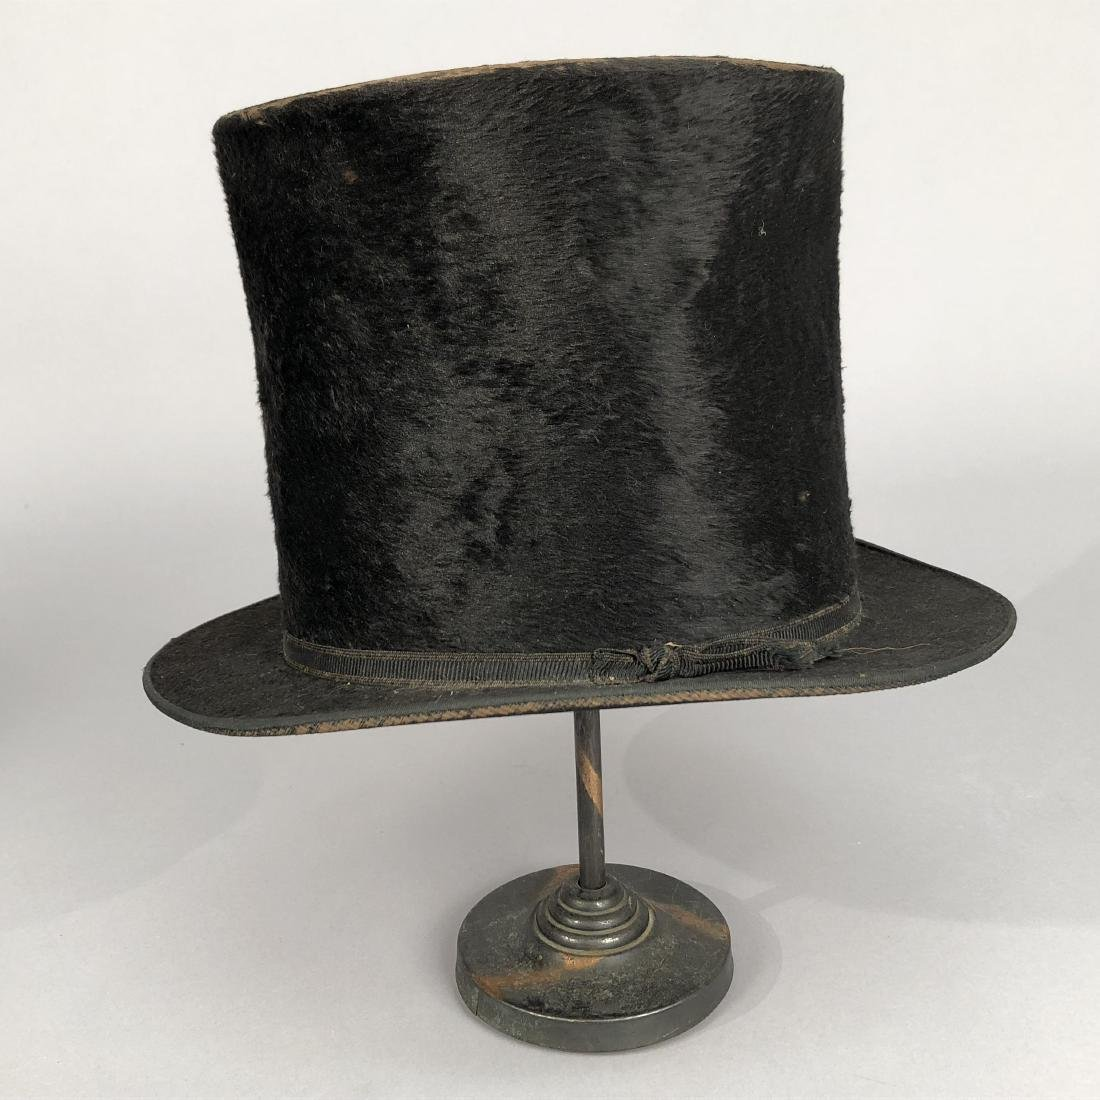 THREE BLACK BEAVER TOP HATS, 1840s - 1890s - 6